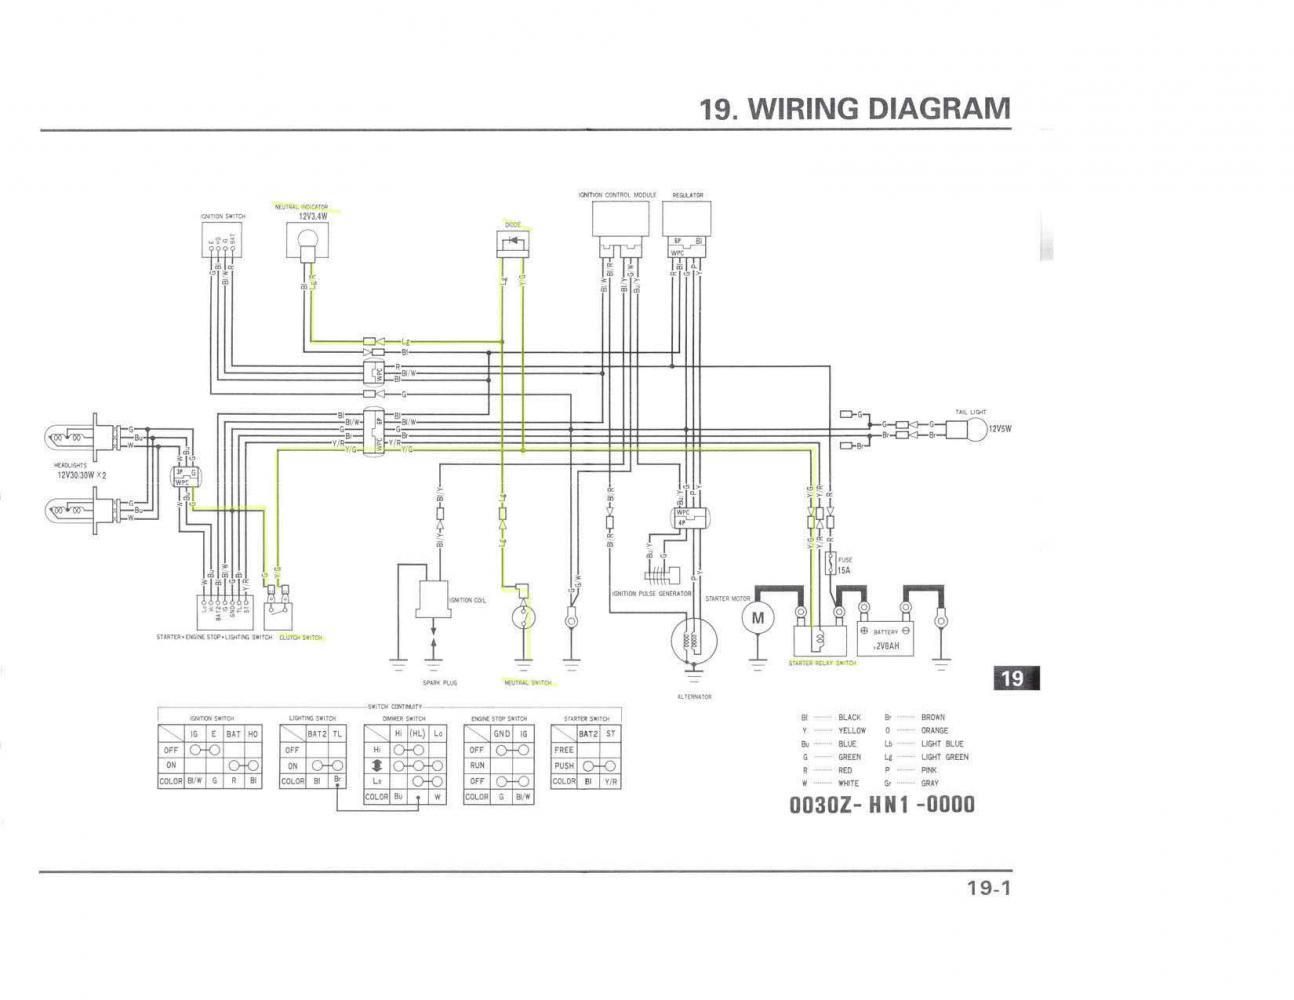 02 Rancher Es Wiring Diagram